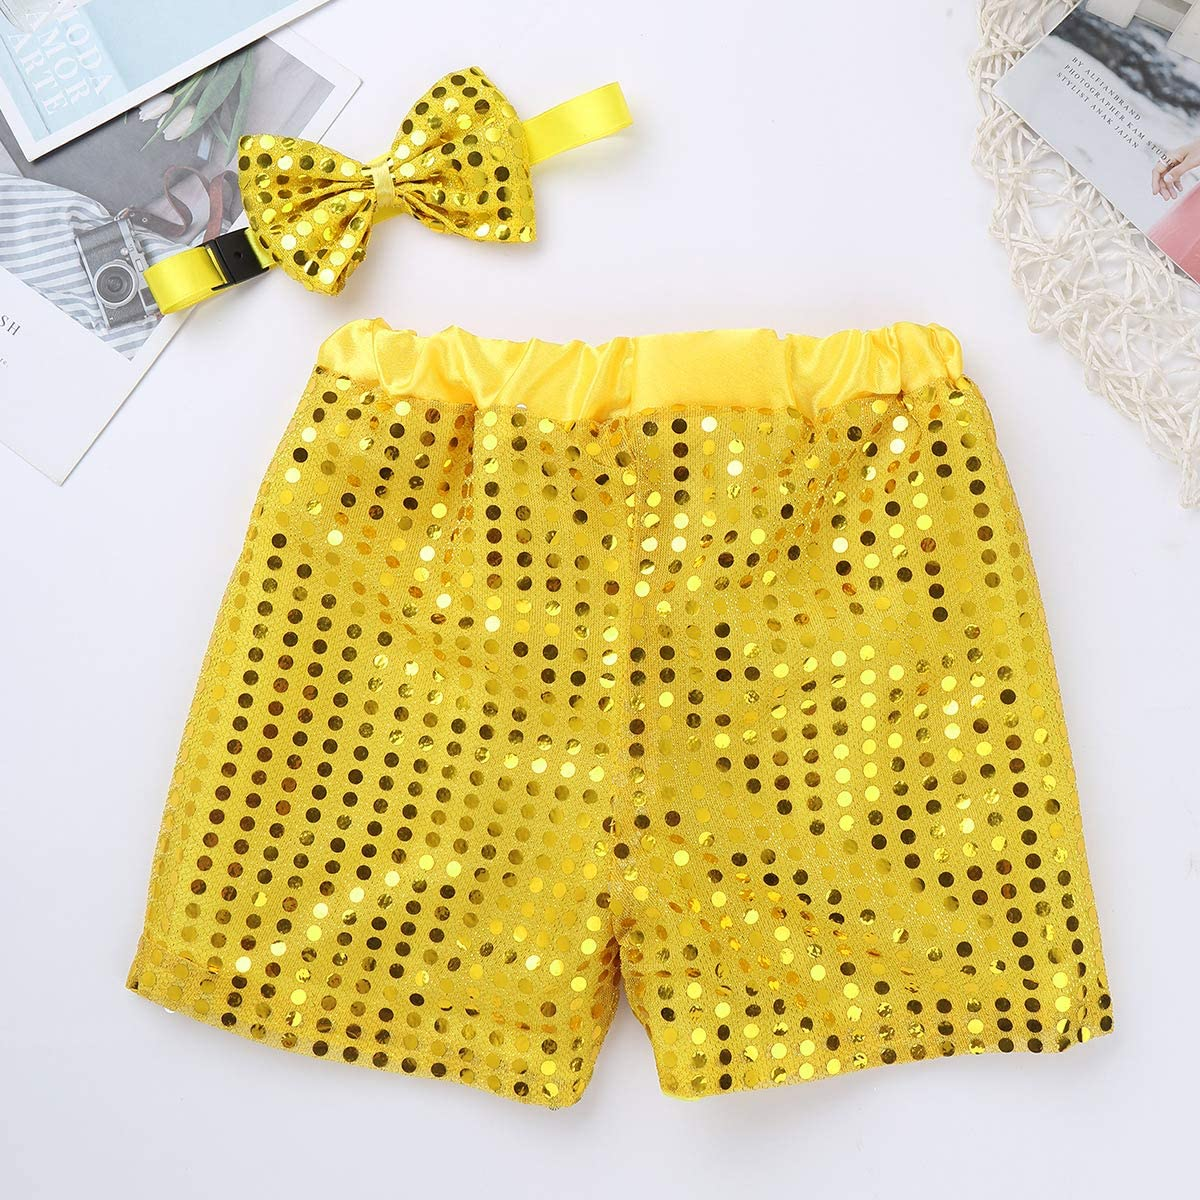 iEFiEL Boys Girls Jazz Dance Choir Stage Performance Shiny Sequined Shorts Pants with Bow 2Pcs Fancy Outfit